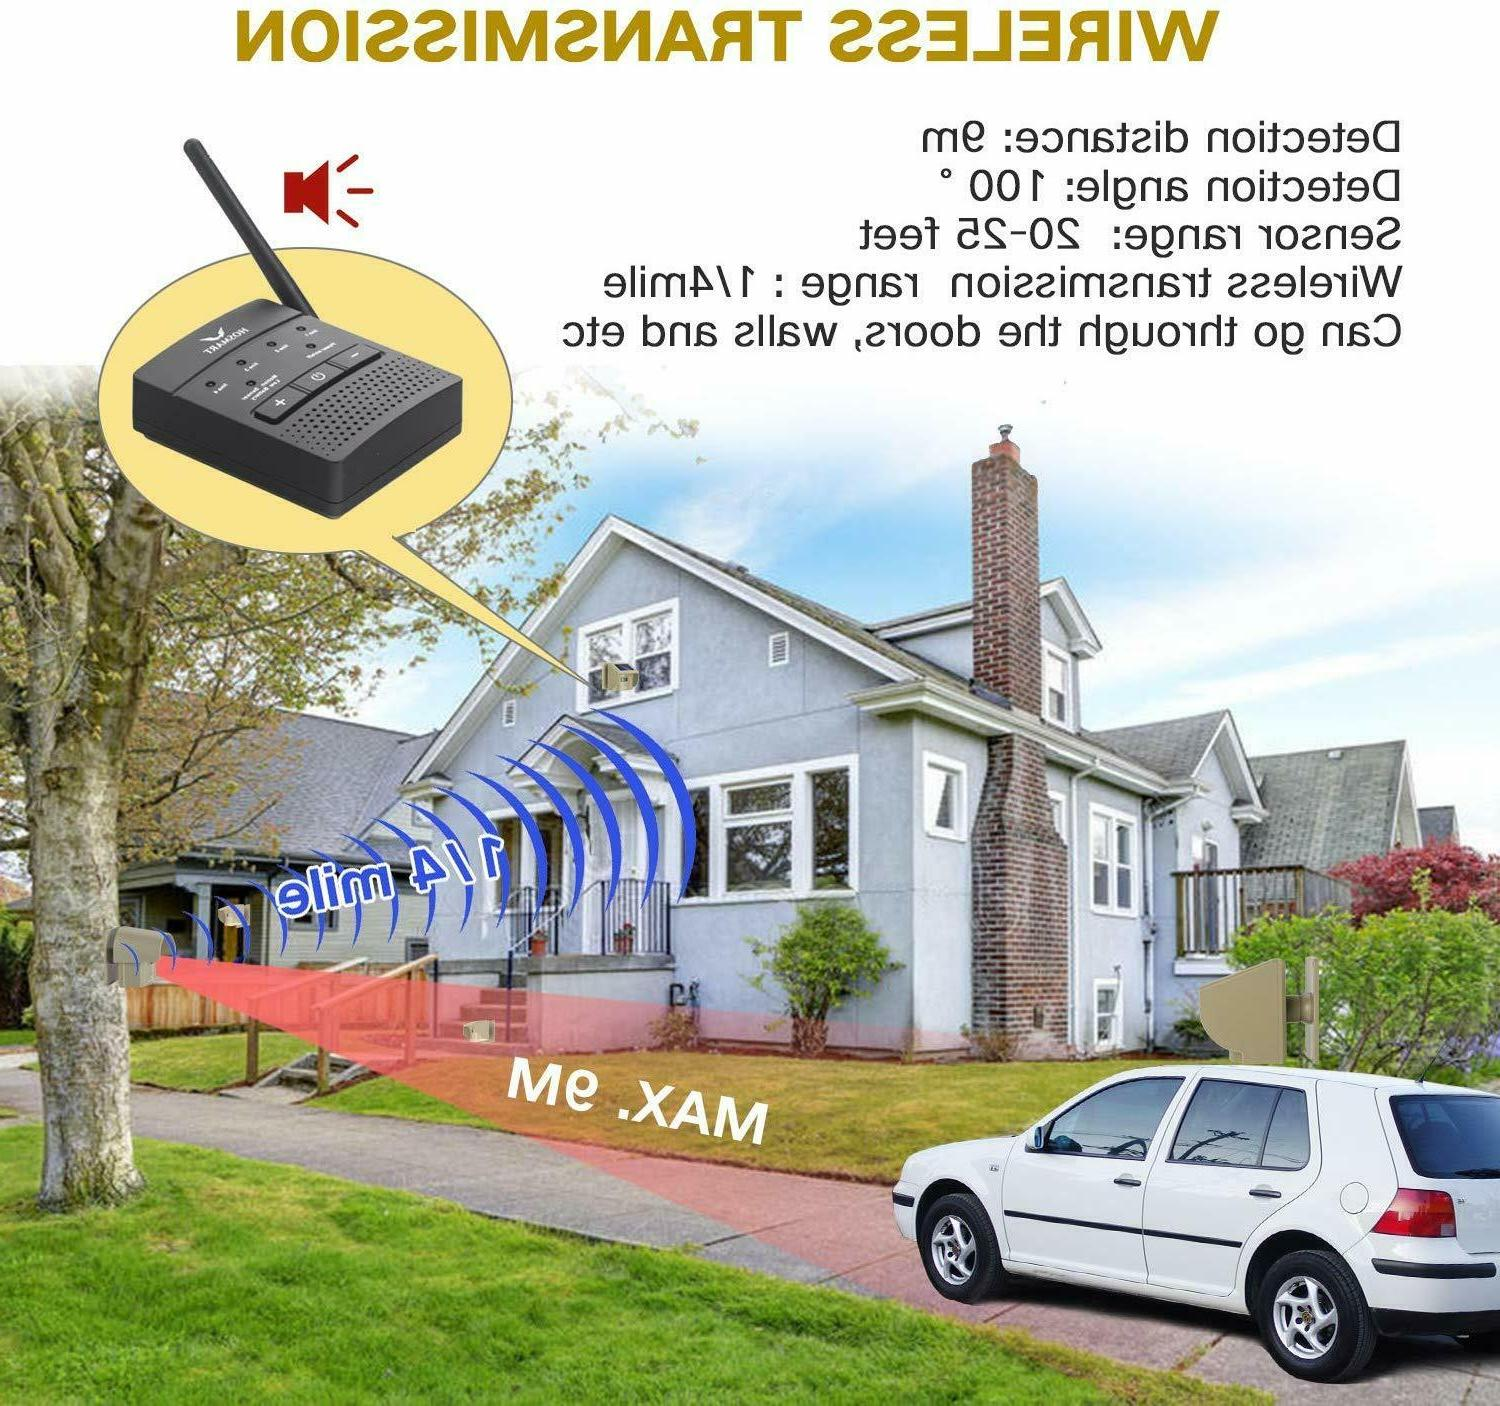 Driveway Wireless Alarm System Mile Motion